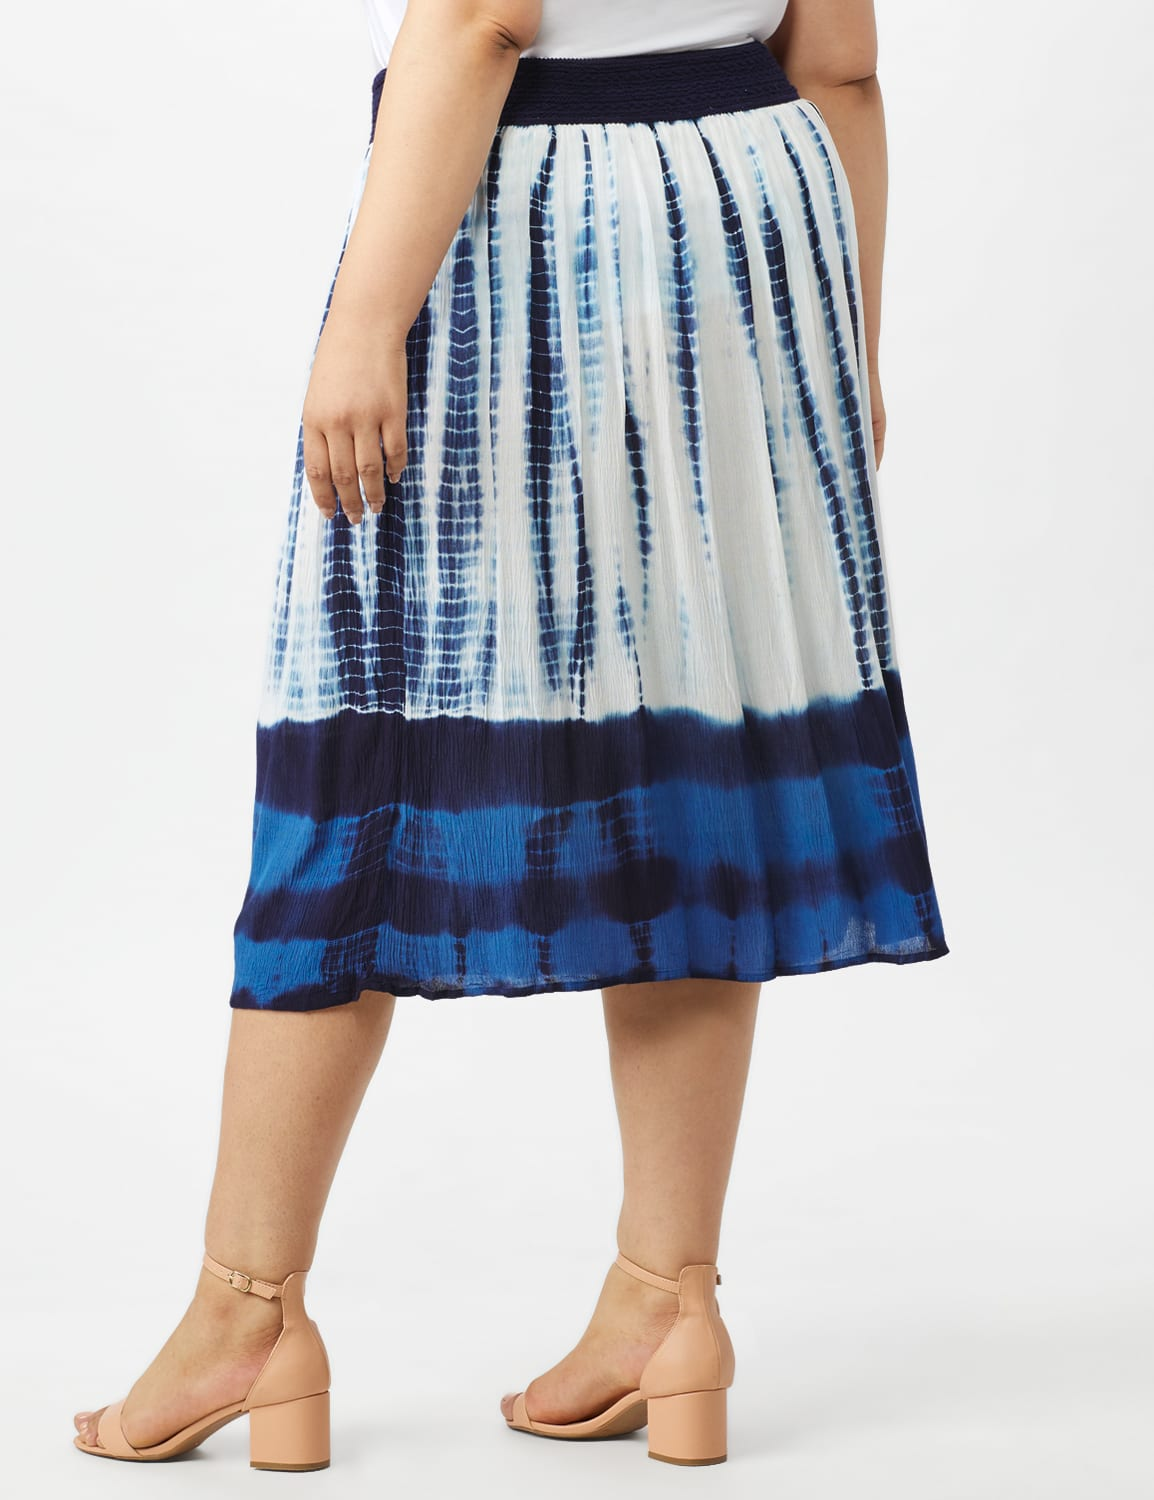 Rayon Gauze Pull On Skirt with Decorative Waistband - Blue/white - Back